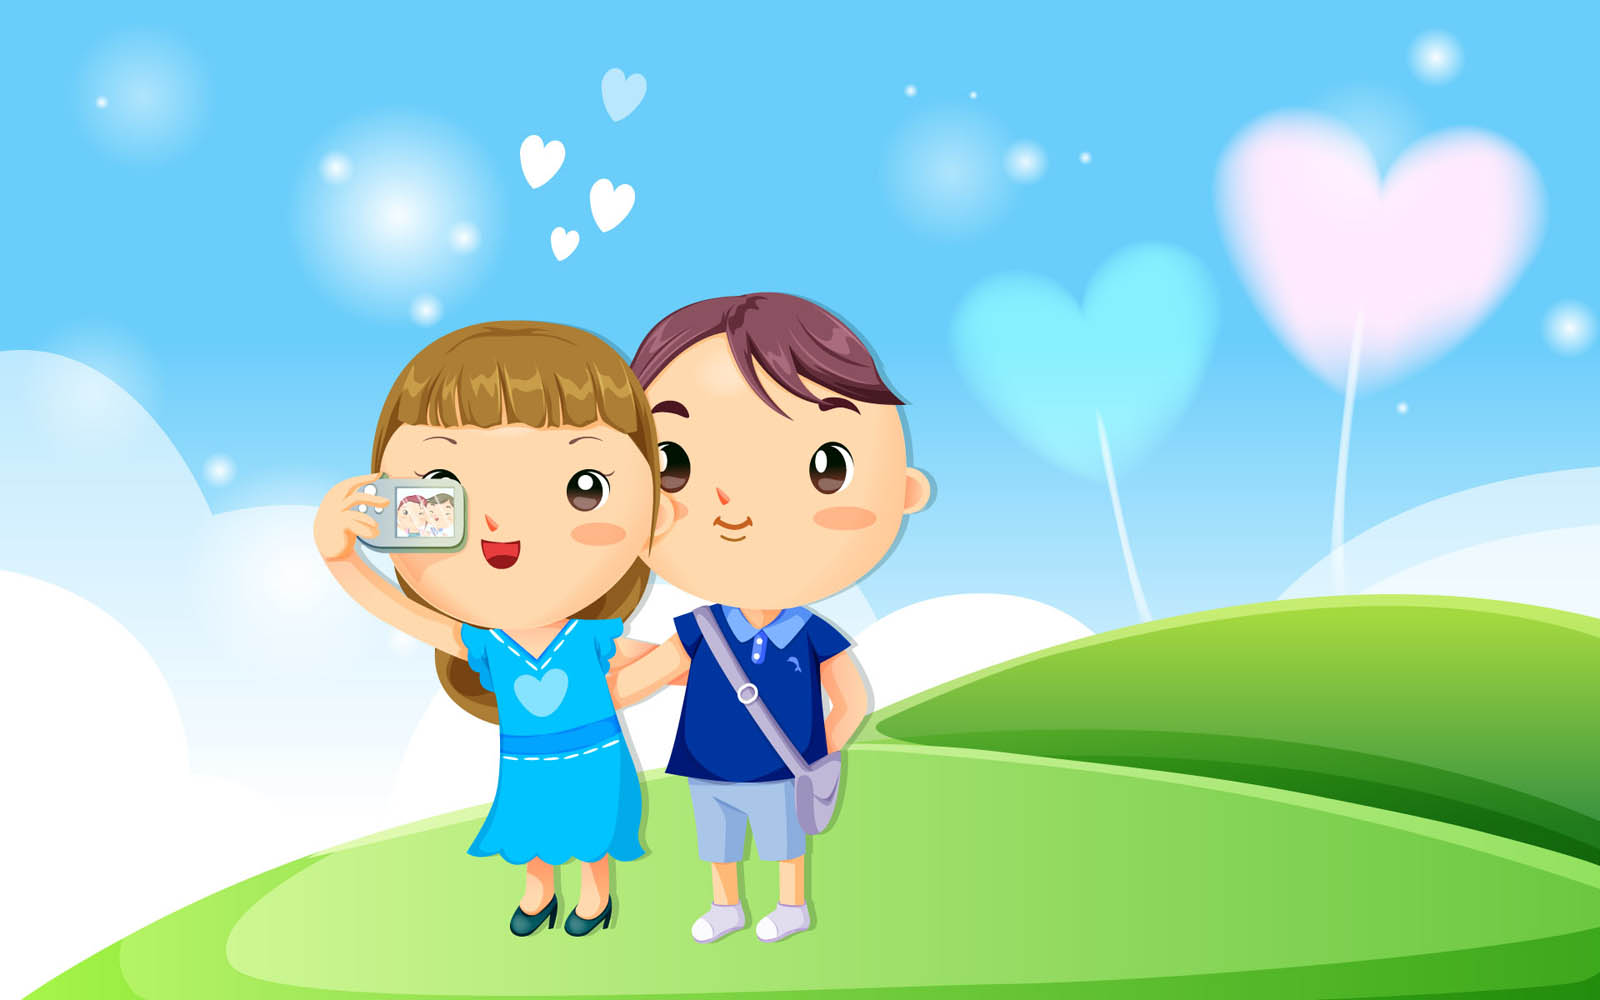 Wallpaper Kartun Cinta Romantis Wallpaper Kartun Cinta Romantis